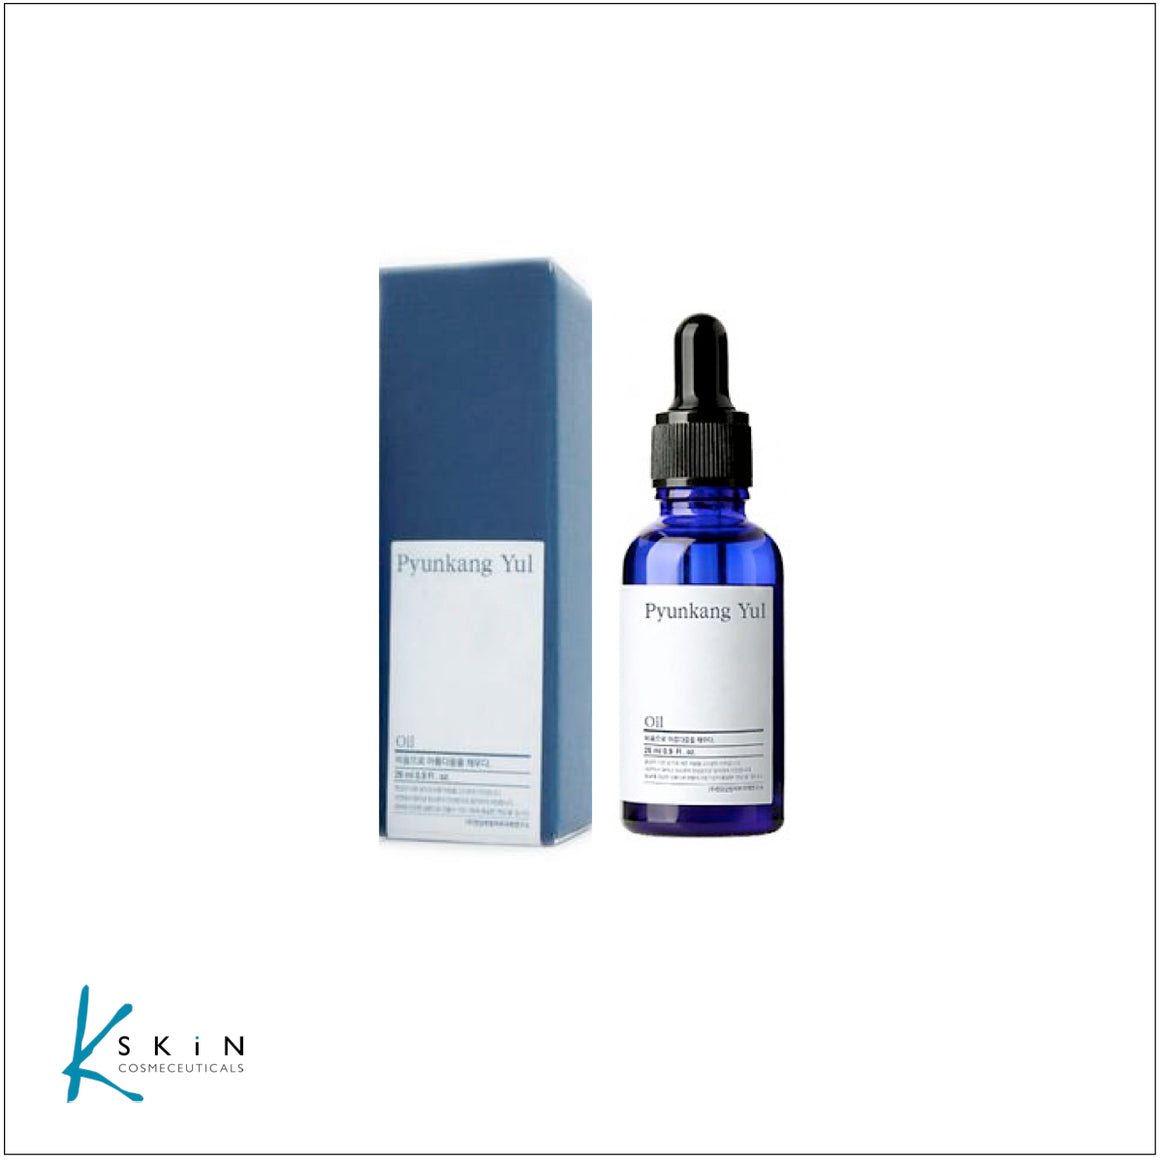 Pyunkang Yul Oil 26ml - www.Kskin.ie